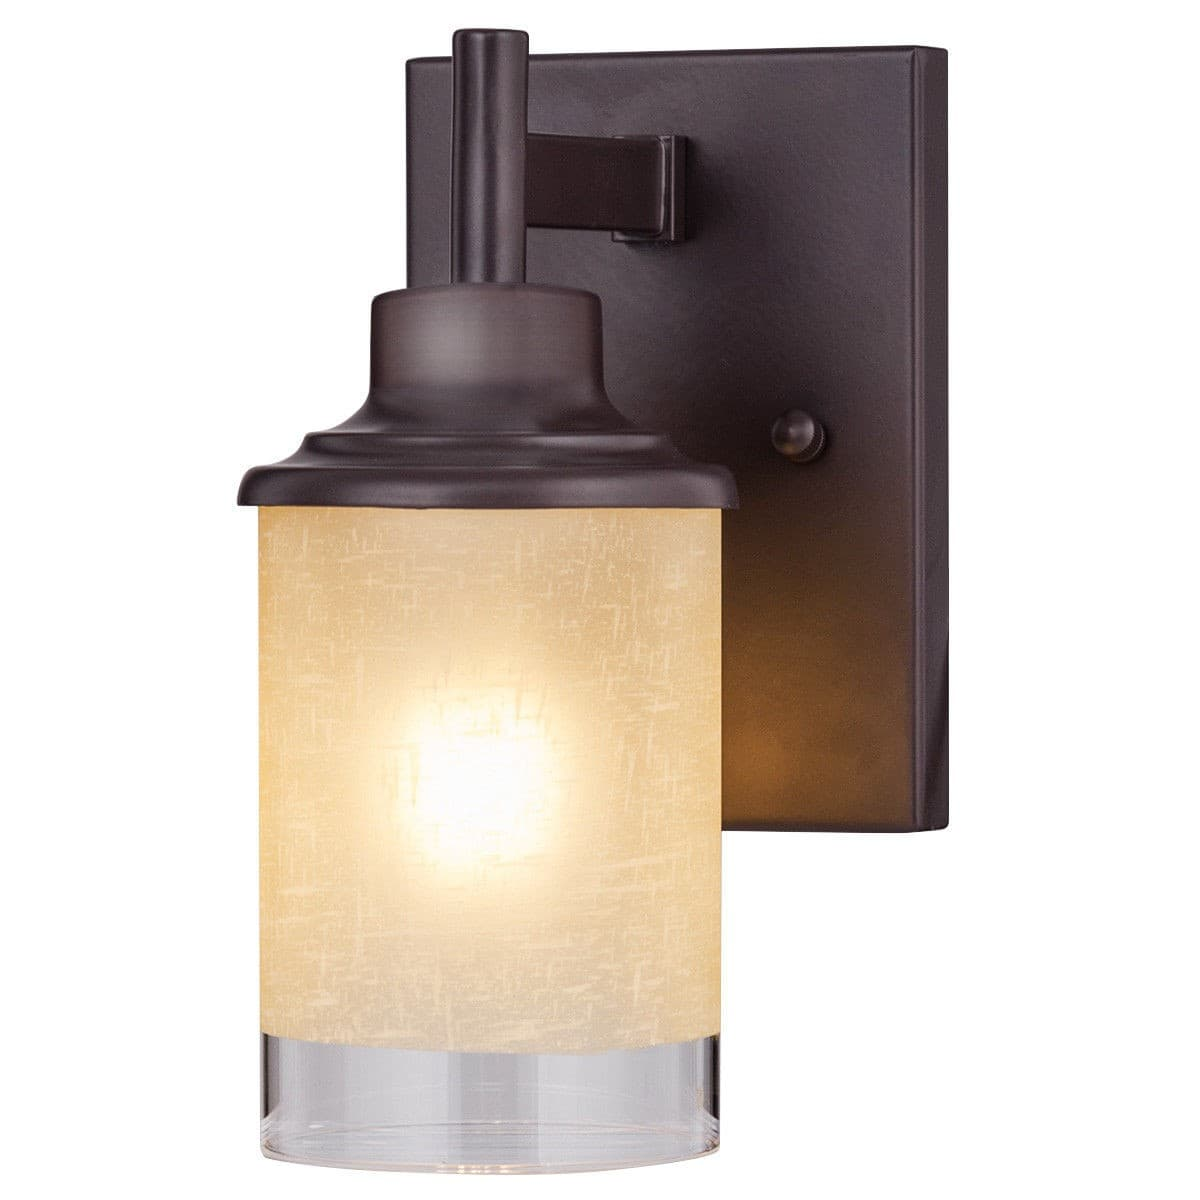 Costway Wall Mounted One-Light Antique Light $15.95 + Free Shipping